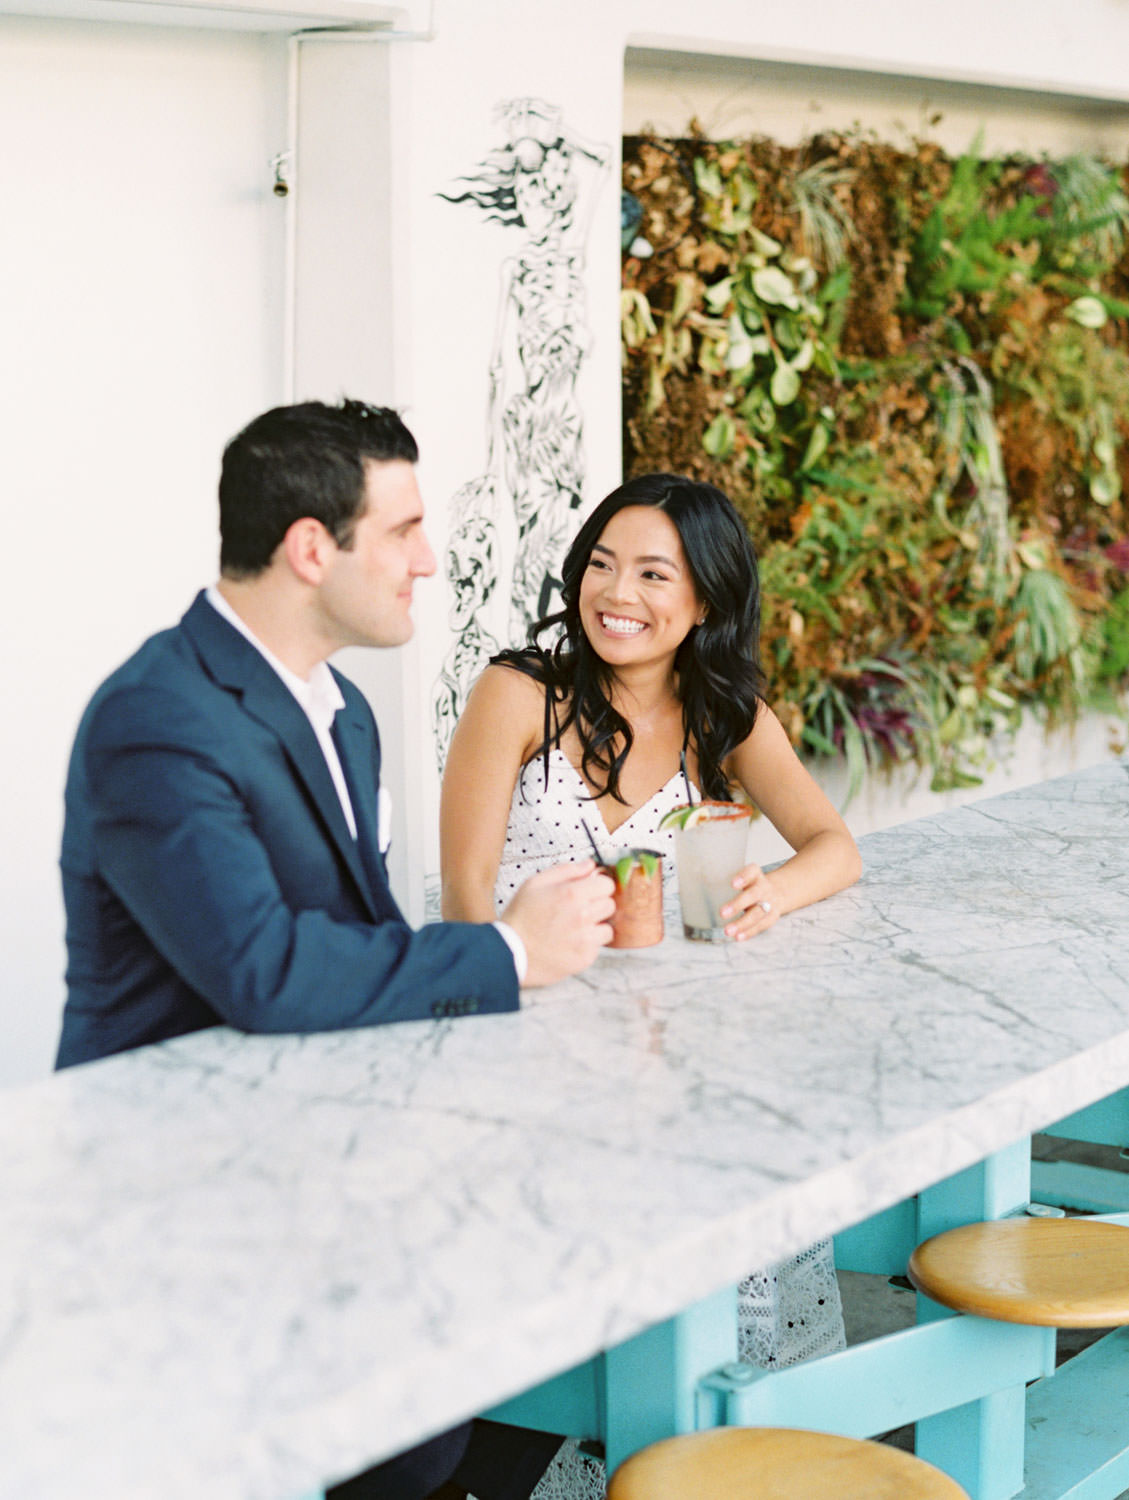 Groom and bride at a marble table drinking cocktails and laughing. Fairweather Rooftop Bar Engagement Photos on film by Cavin Elizabeth Photography